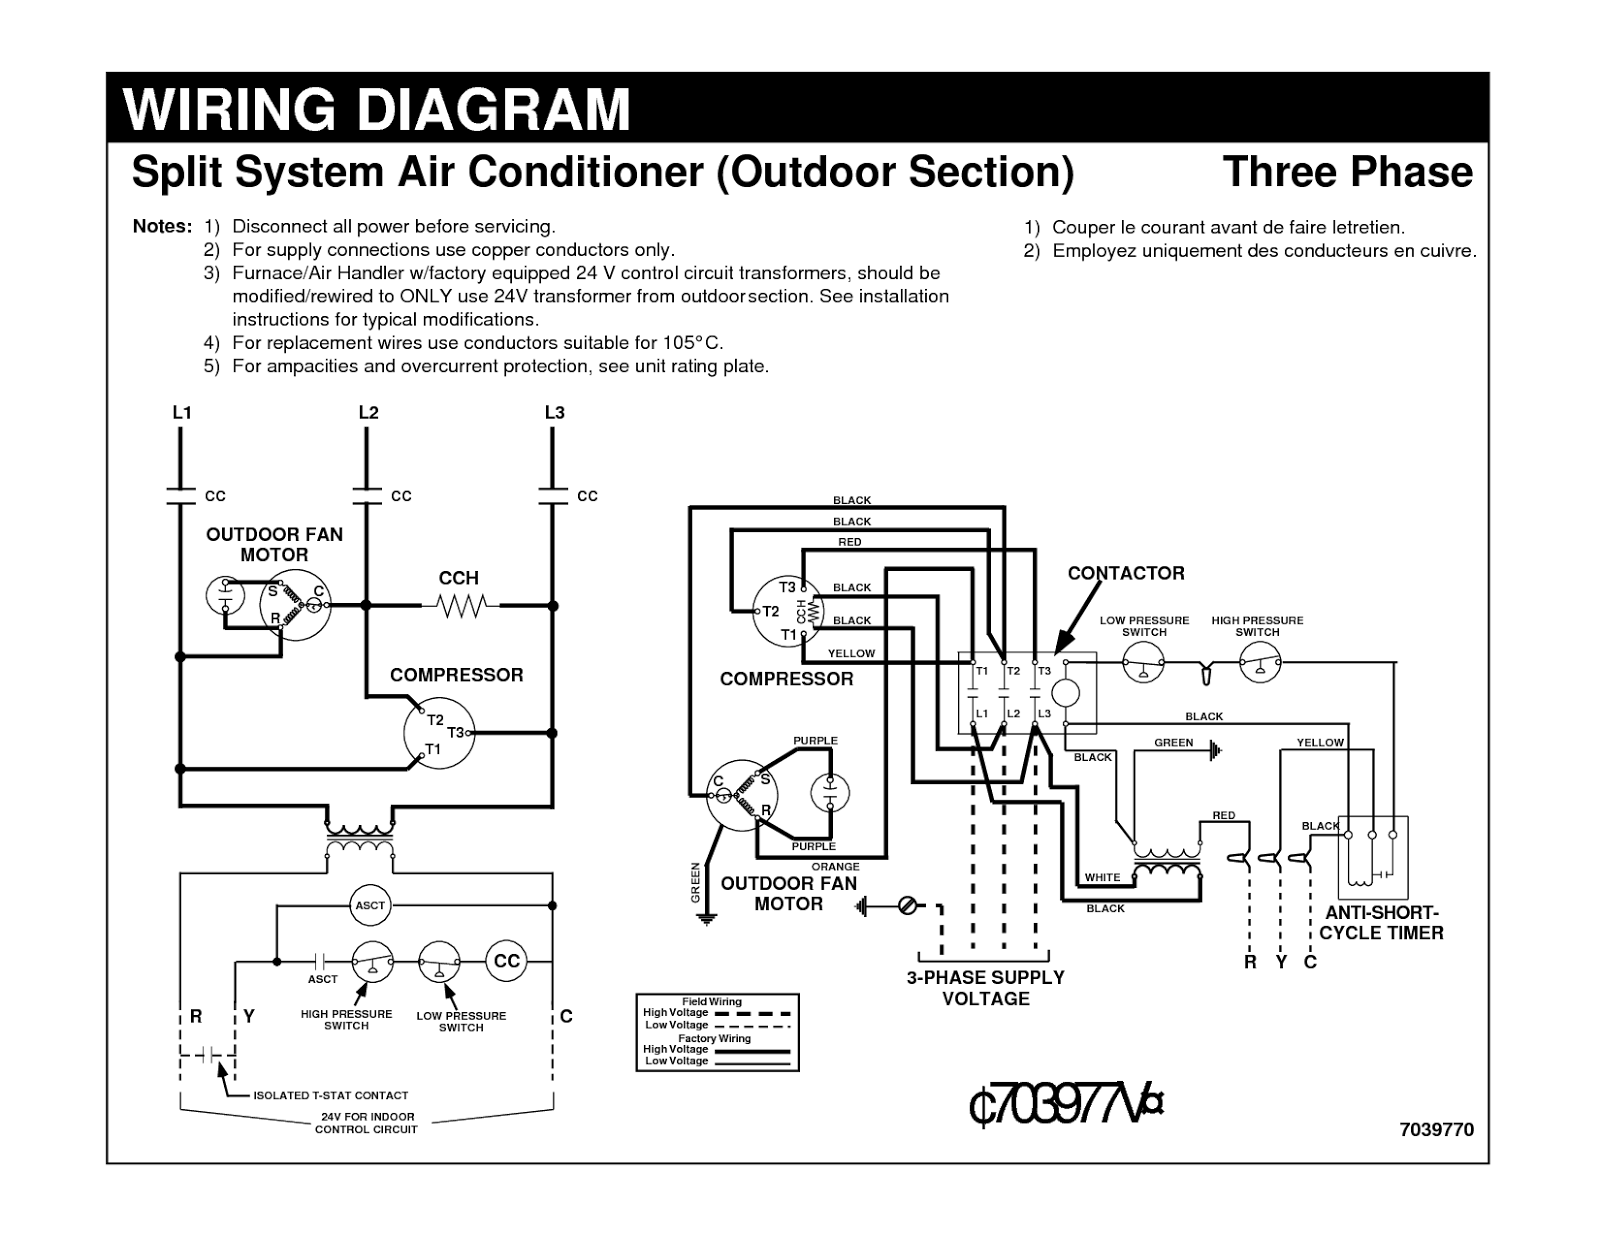 Basic Air Conditioning Wiring Diagram Air Conditioner Wiring Diagram ...